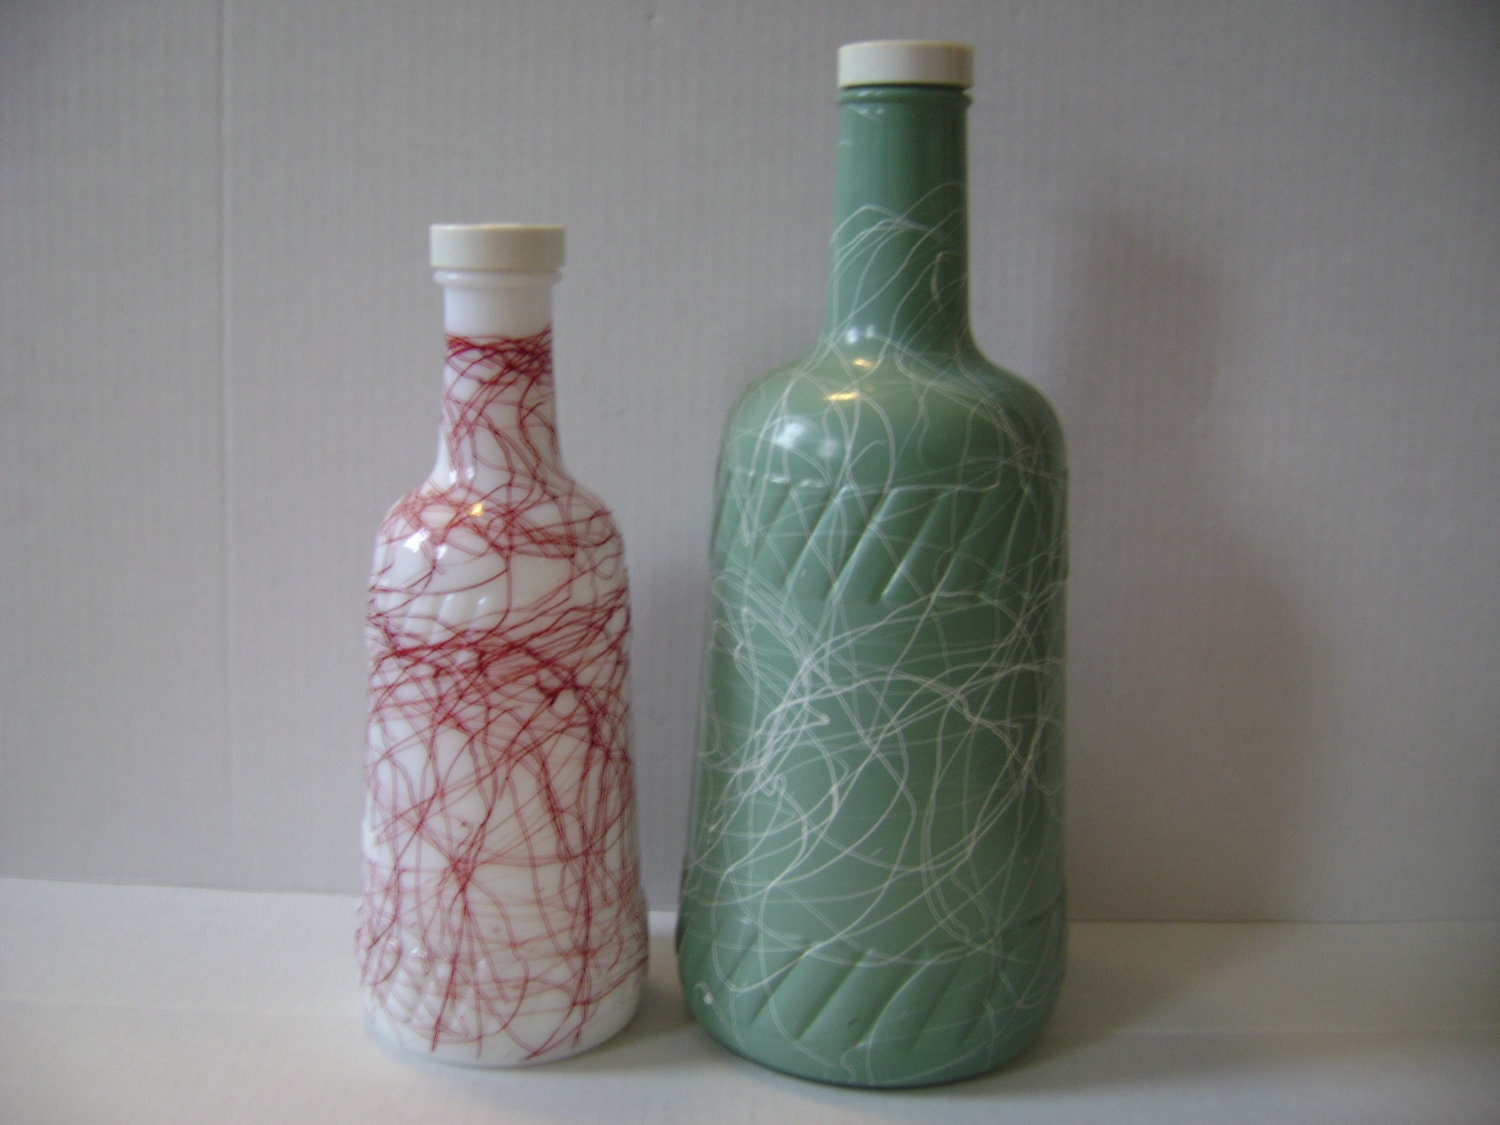 2 Vintage 1950s Hazel Atlas Splatter Painted Wine Bottles or  Liquid Storage Bottles White Milk Glass with Red Paint Clear Painted Green